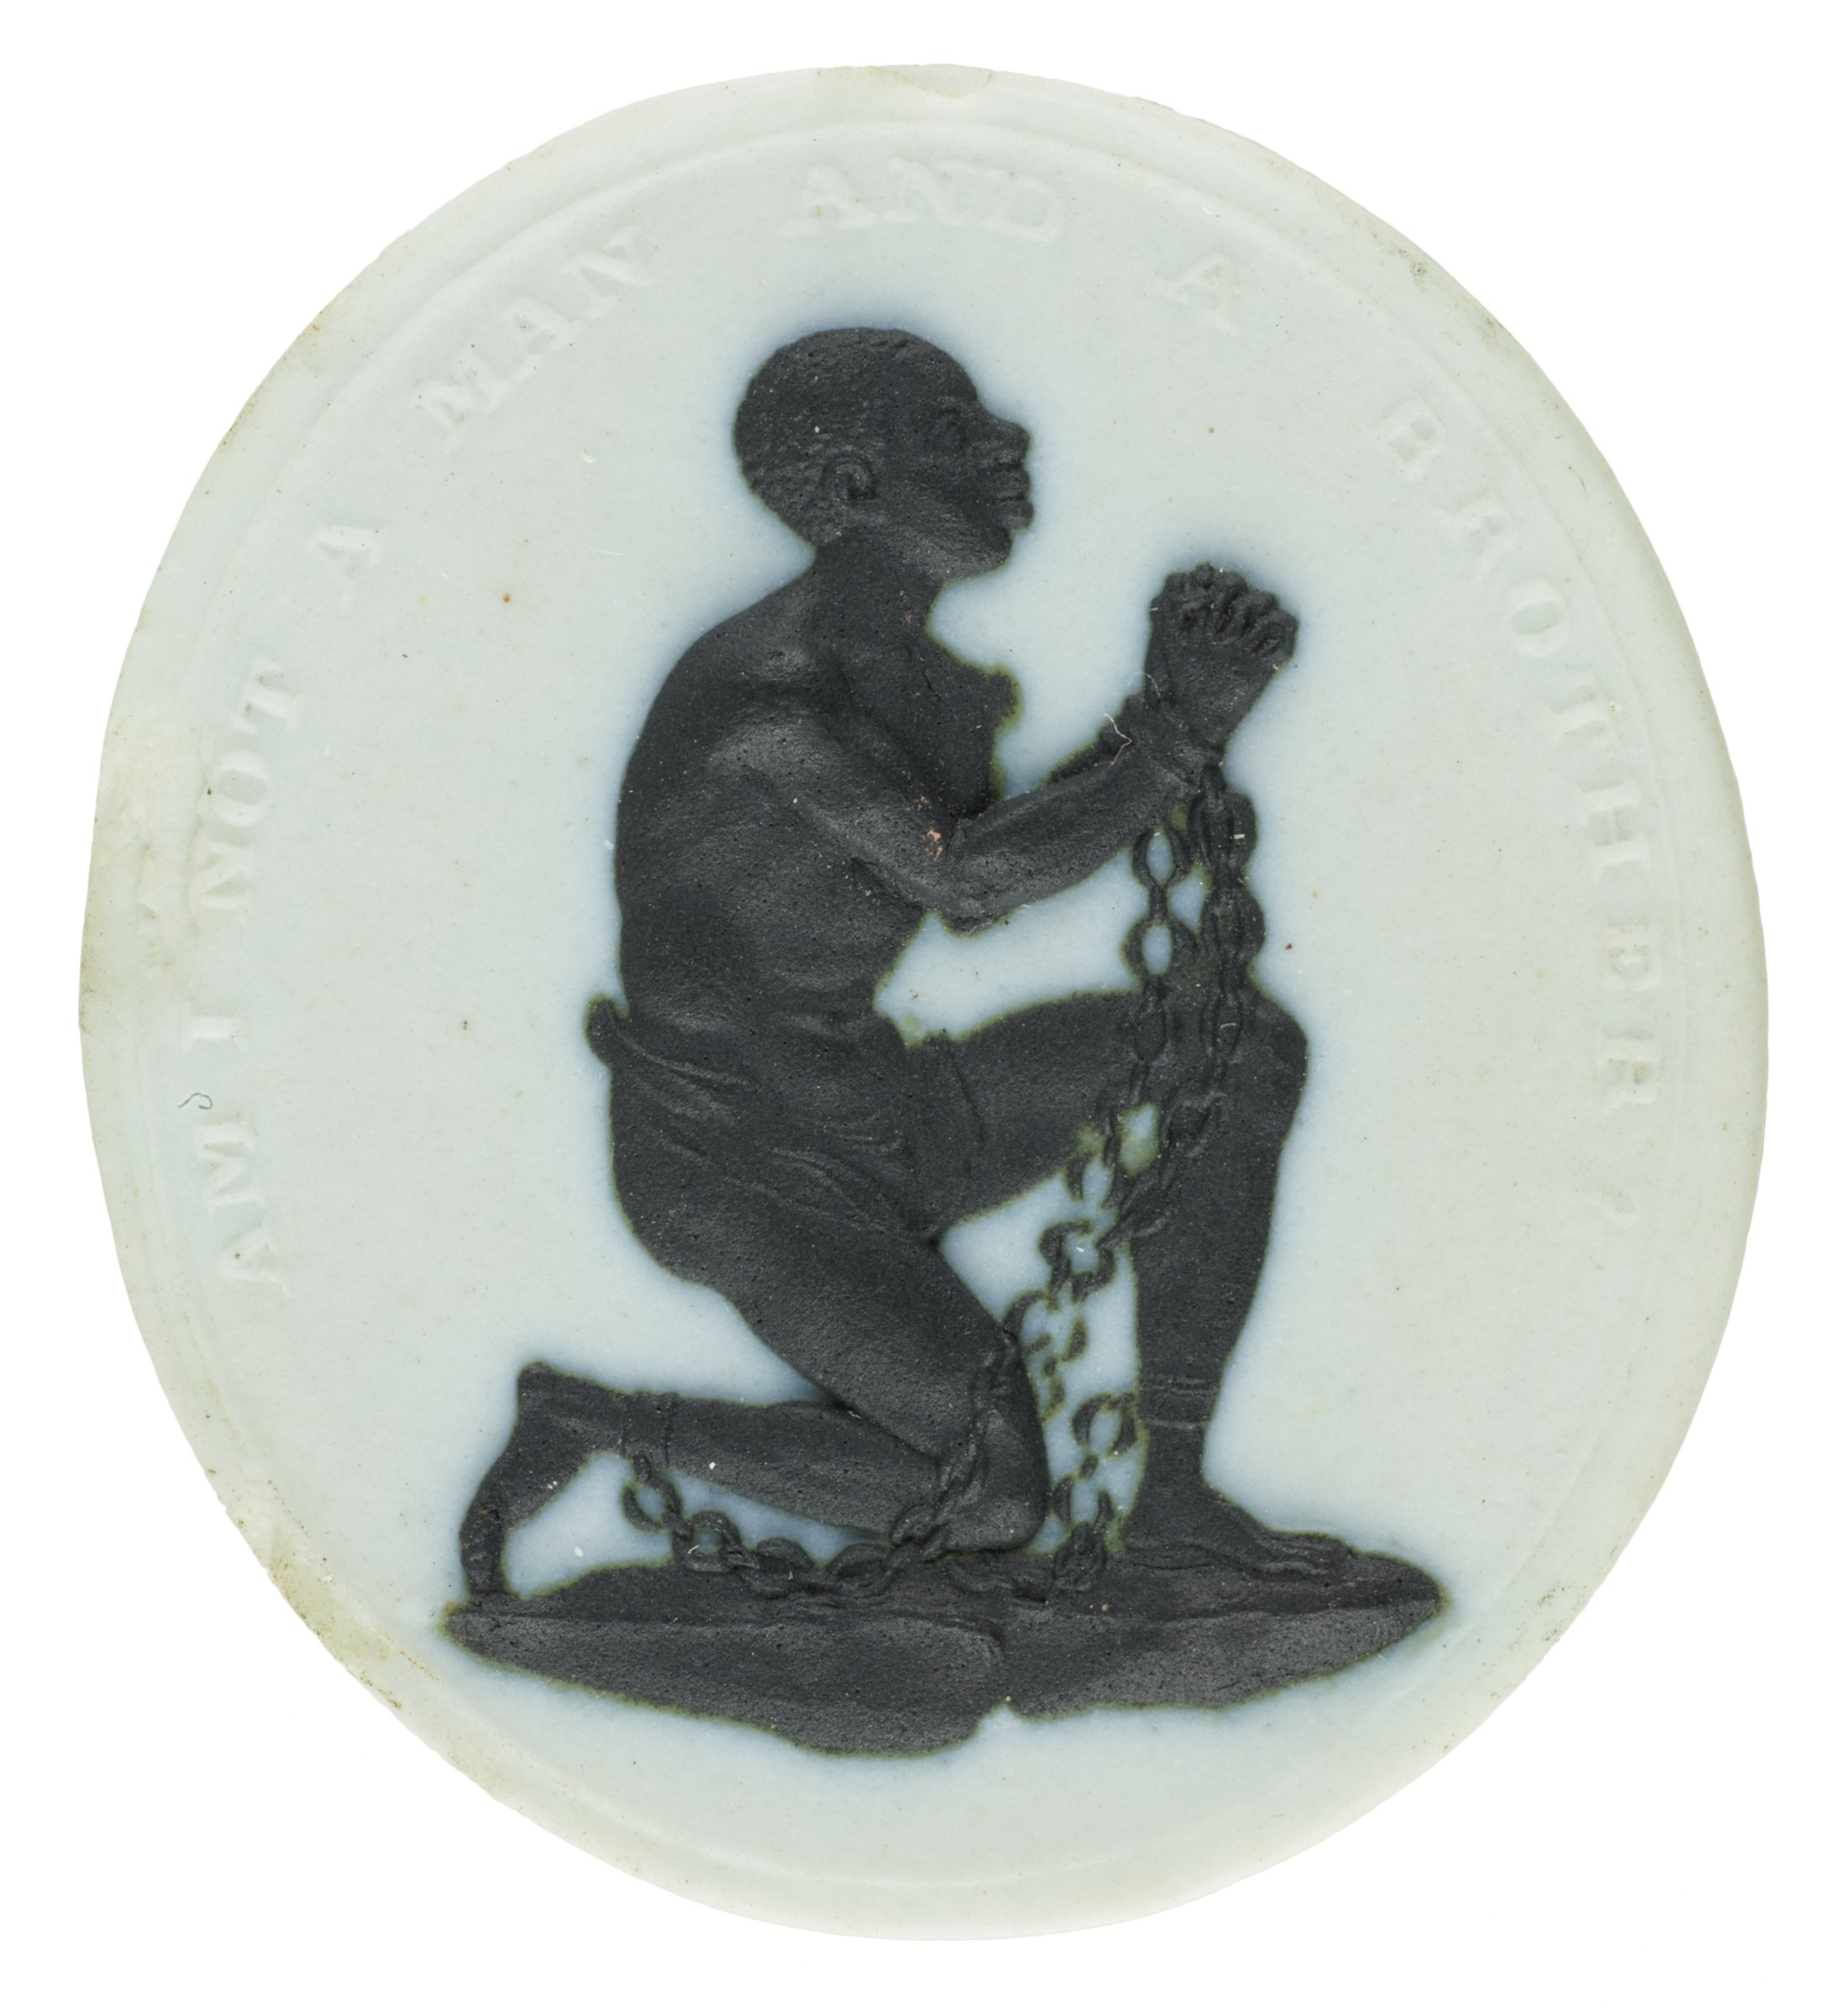 Small oval medallion of white jasperware with black jasper relief of an African slave wearing only a loin cloth, kneeling and in shackles, with his hands grasped together, around him the inscription AM I NOT A MAN AND A BROTHER?